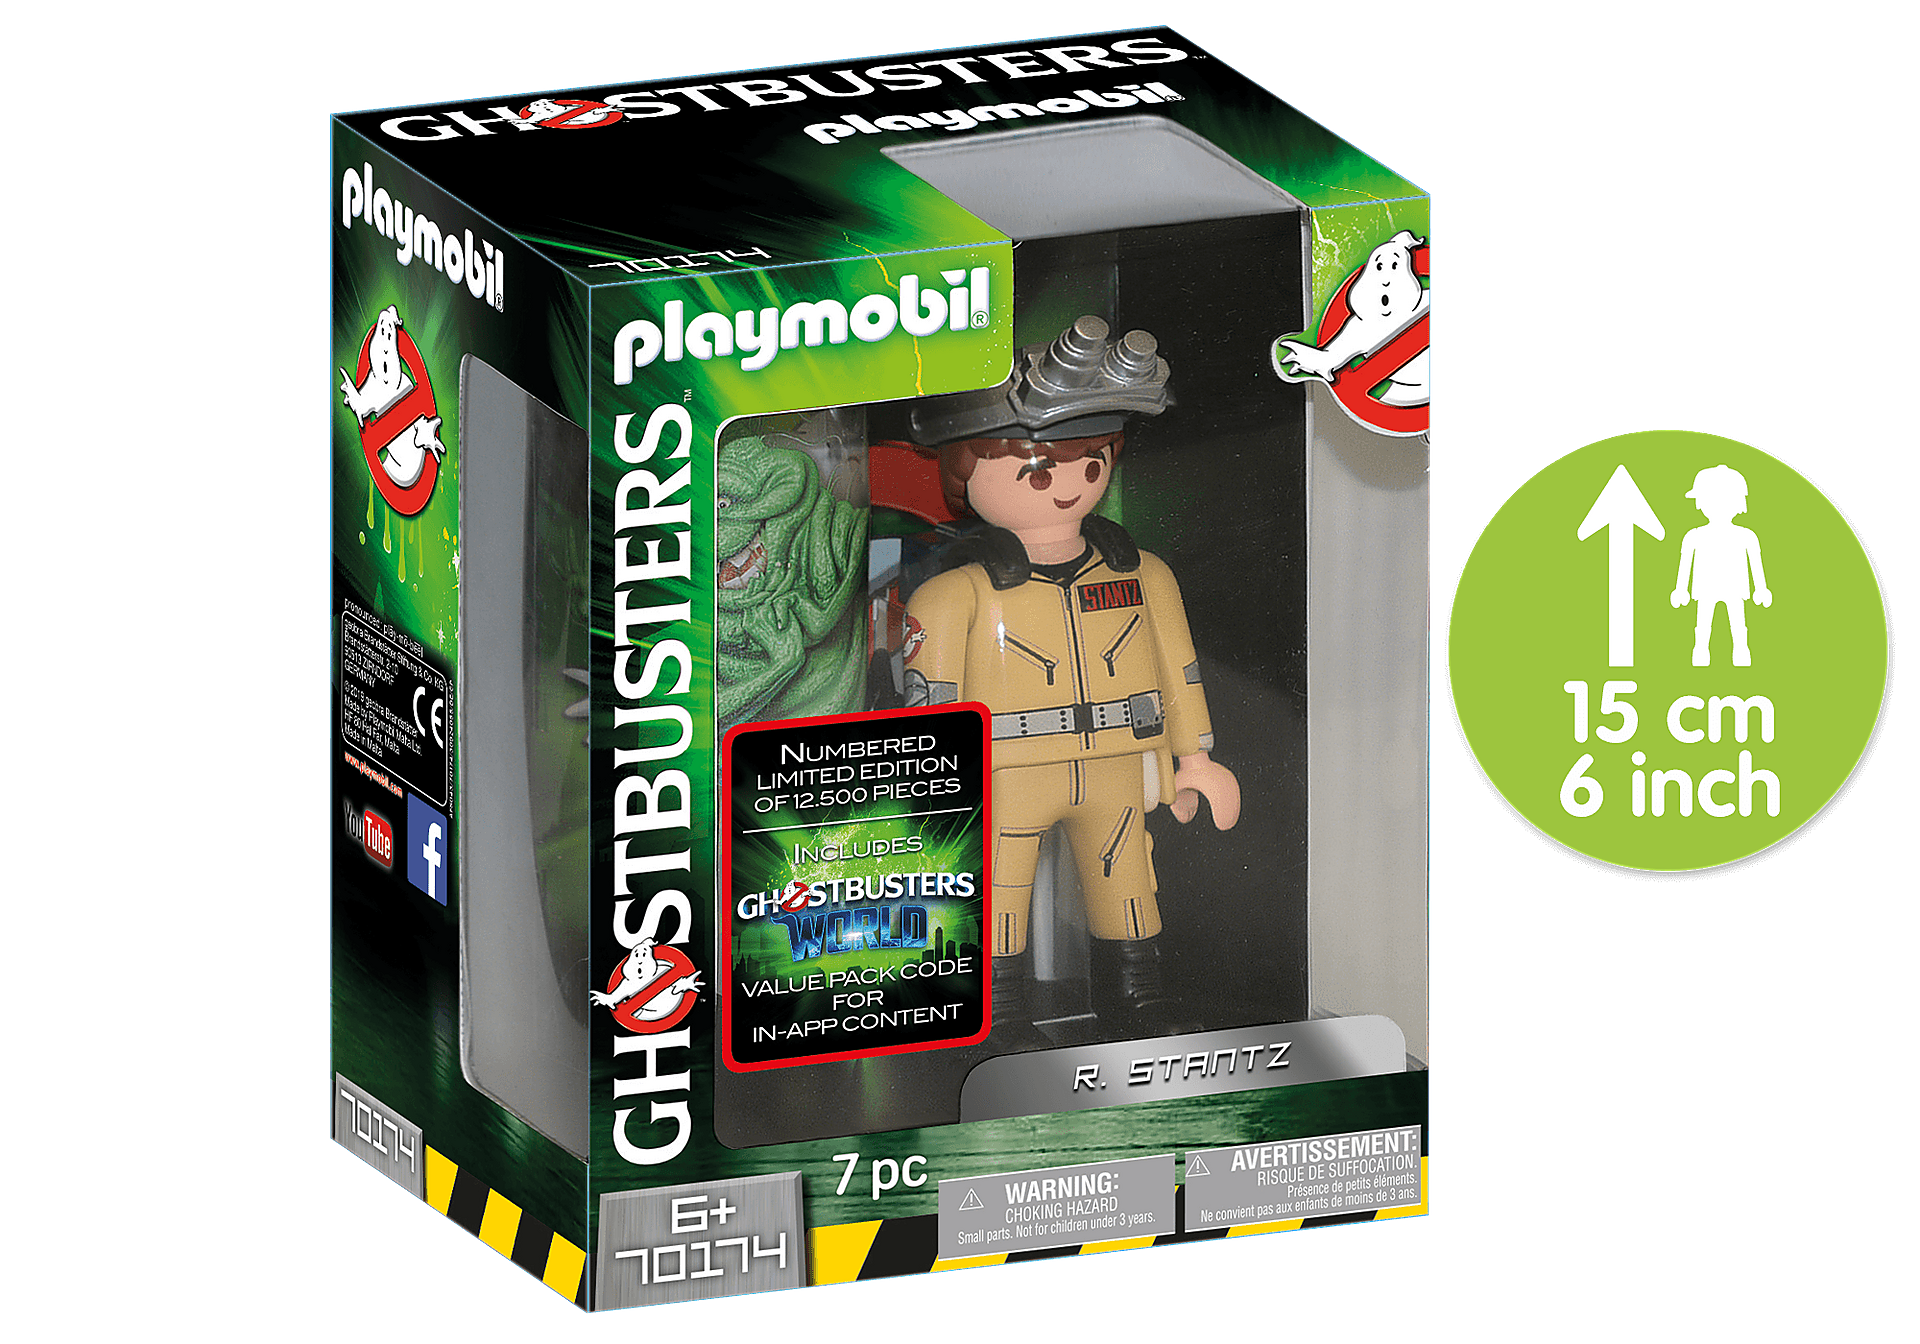 http://media.playmobil.com/i/playmobil/70174_product_detail/Ghostbusters™ Samlefigur R. Stantz